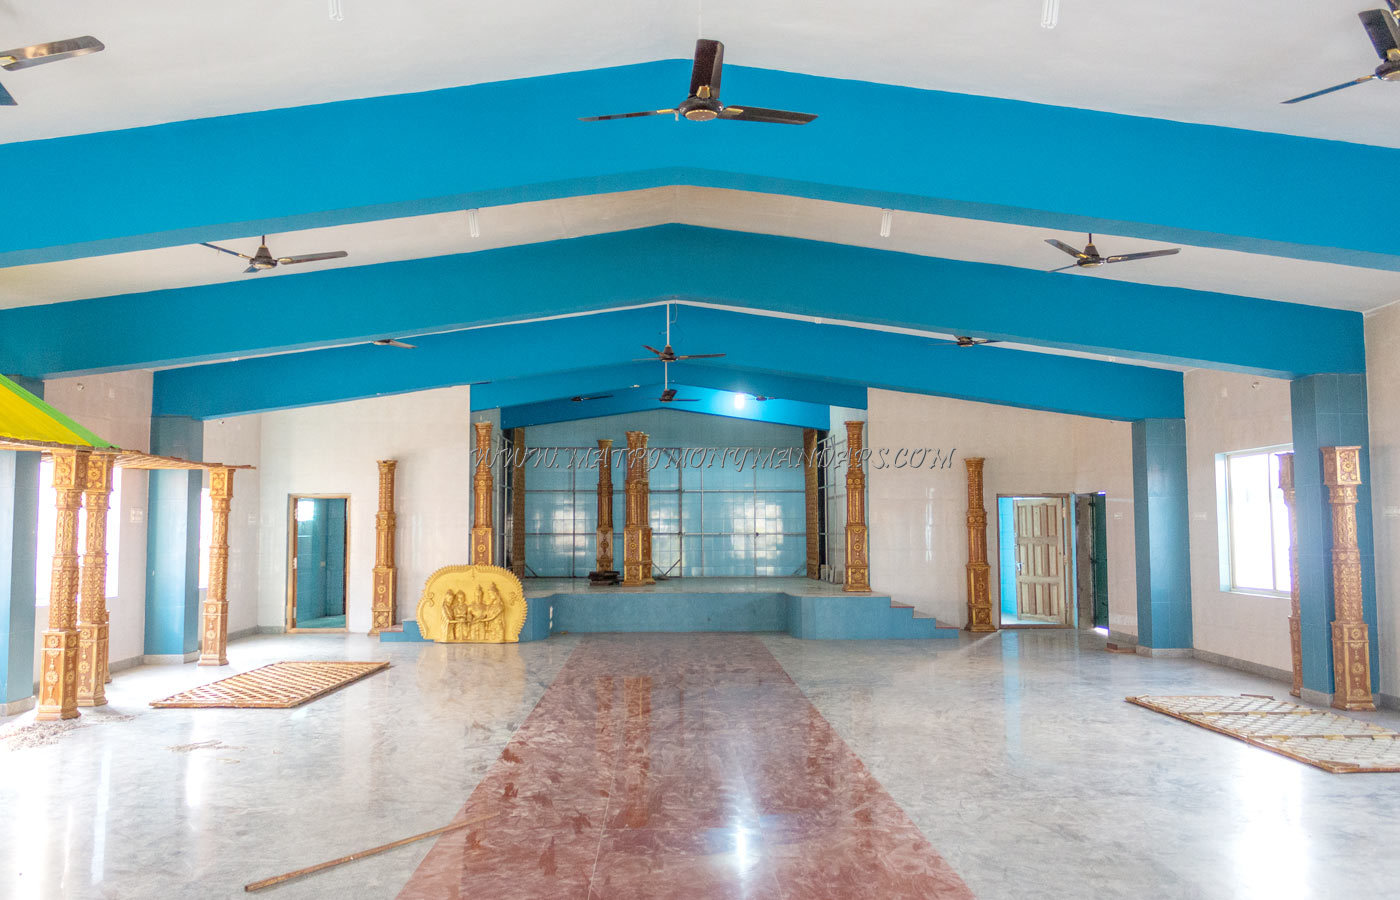 Find the availability of the Shakthi Hill Resort Hines Hall (A/C) in Rajarajeshwari Nagar, Bangalore and avail special offers